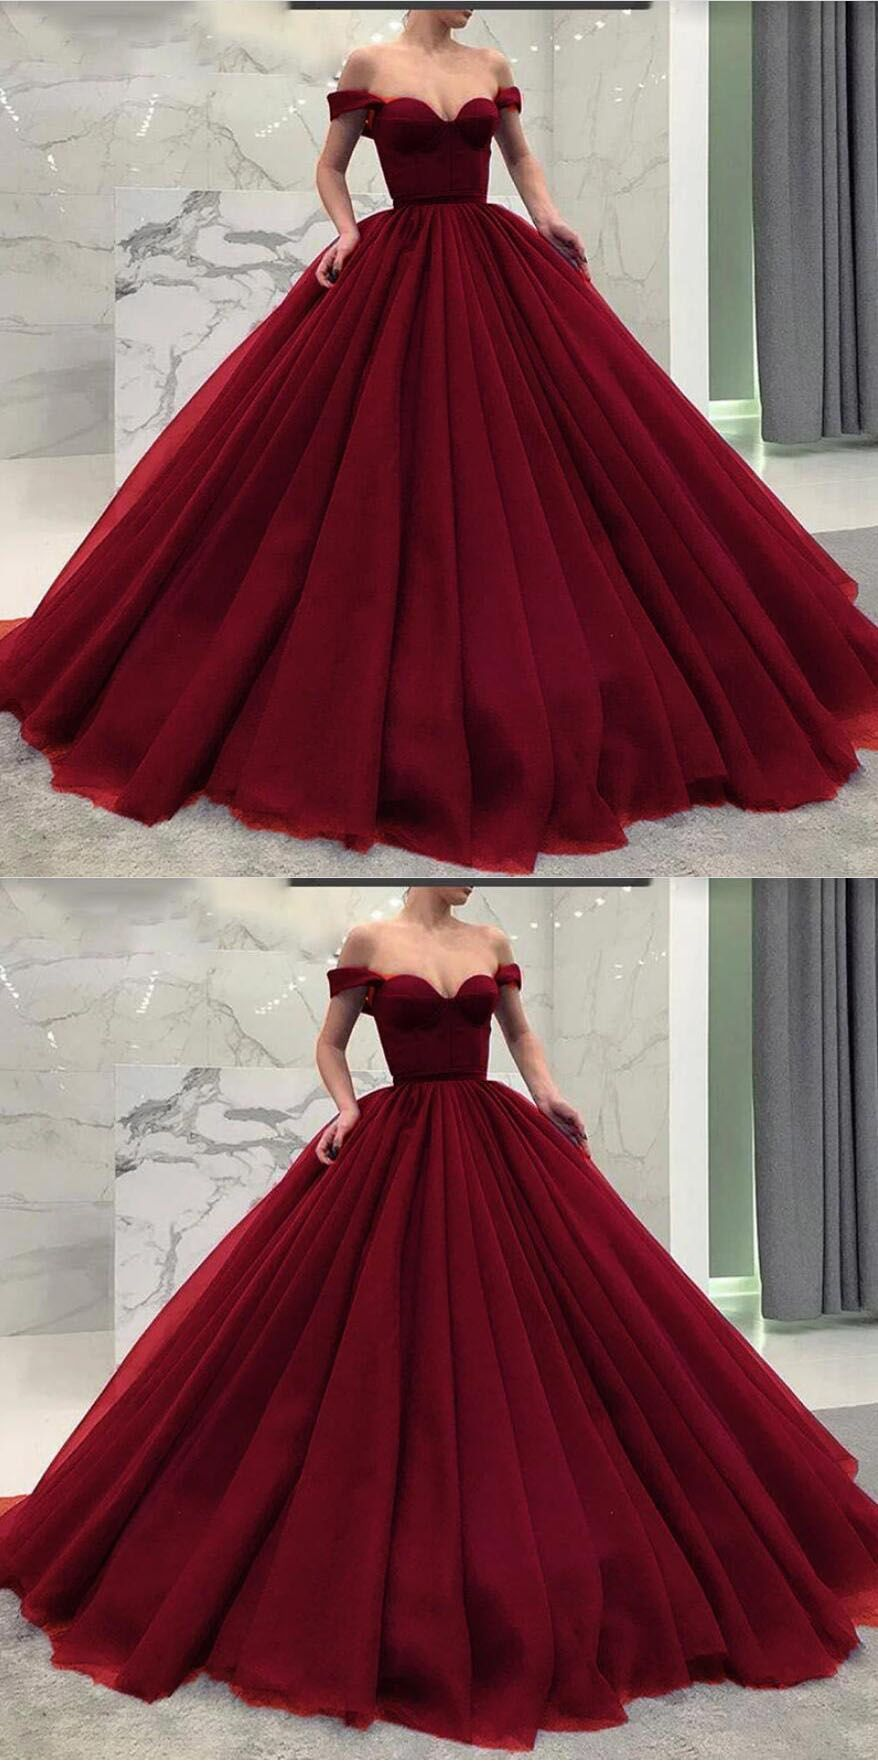 Fancy Princess off shoulder burgundy ball gown prom dress